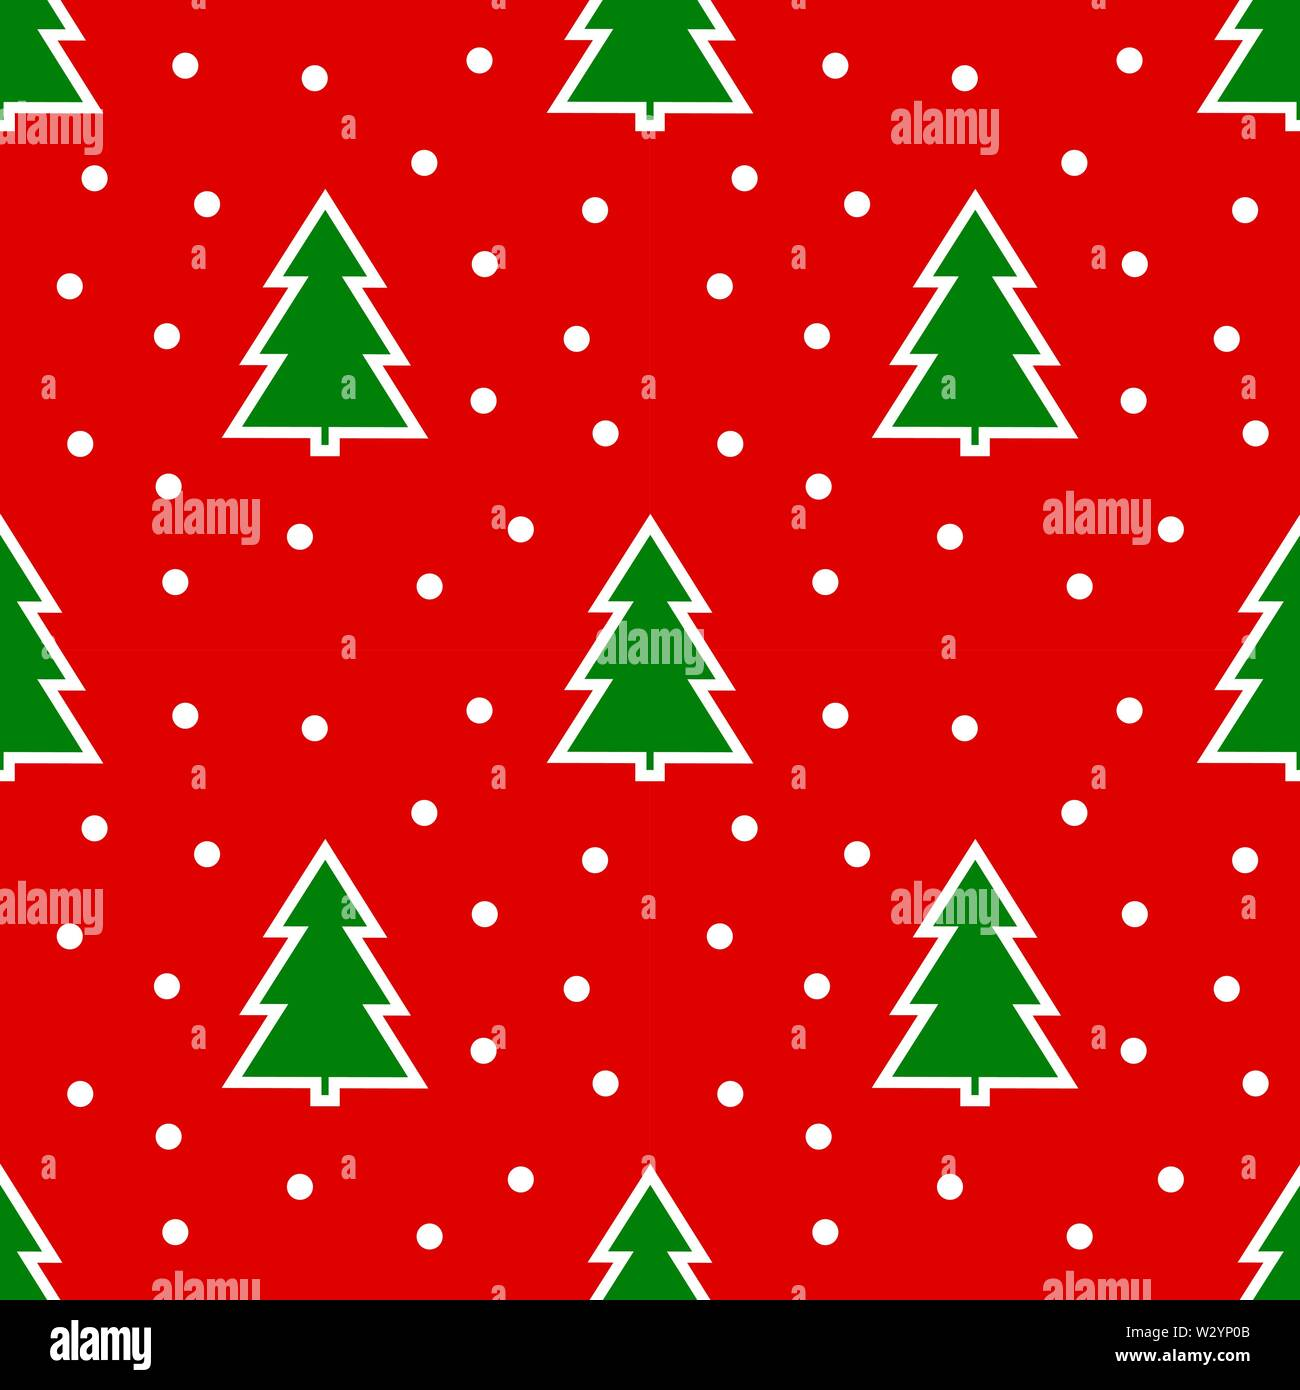 Christmas trees on red background seamless pattern. Vector illustration. - Stock Image